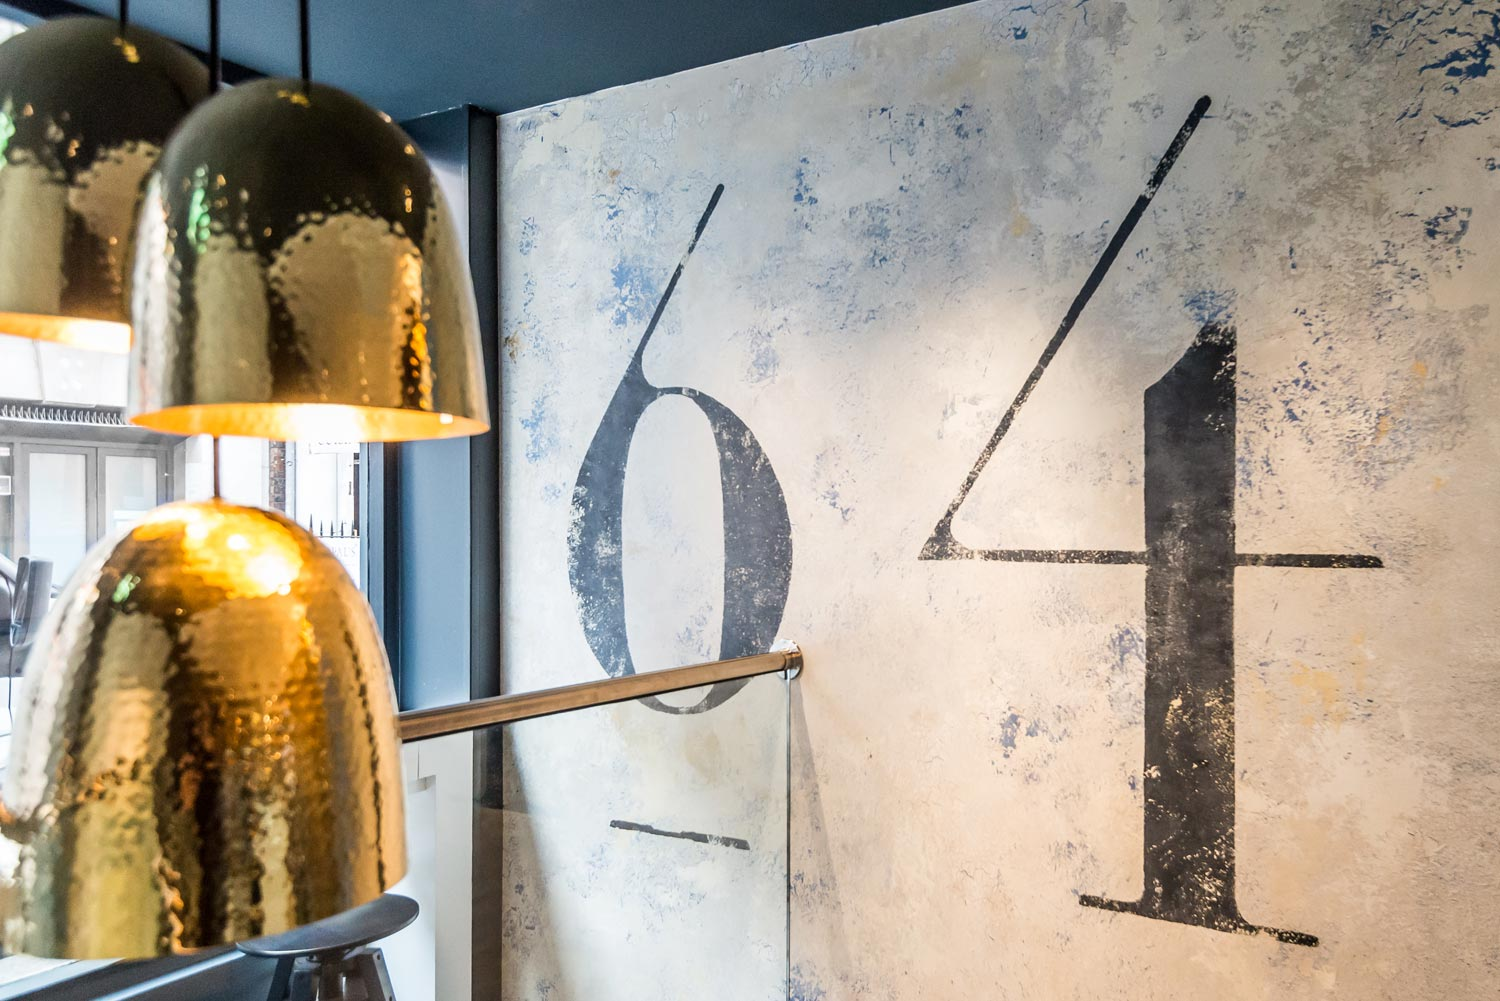 SALON64: A New Wave Of Hairdressing in London